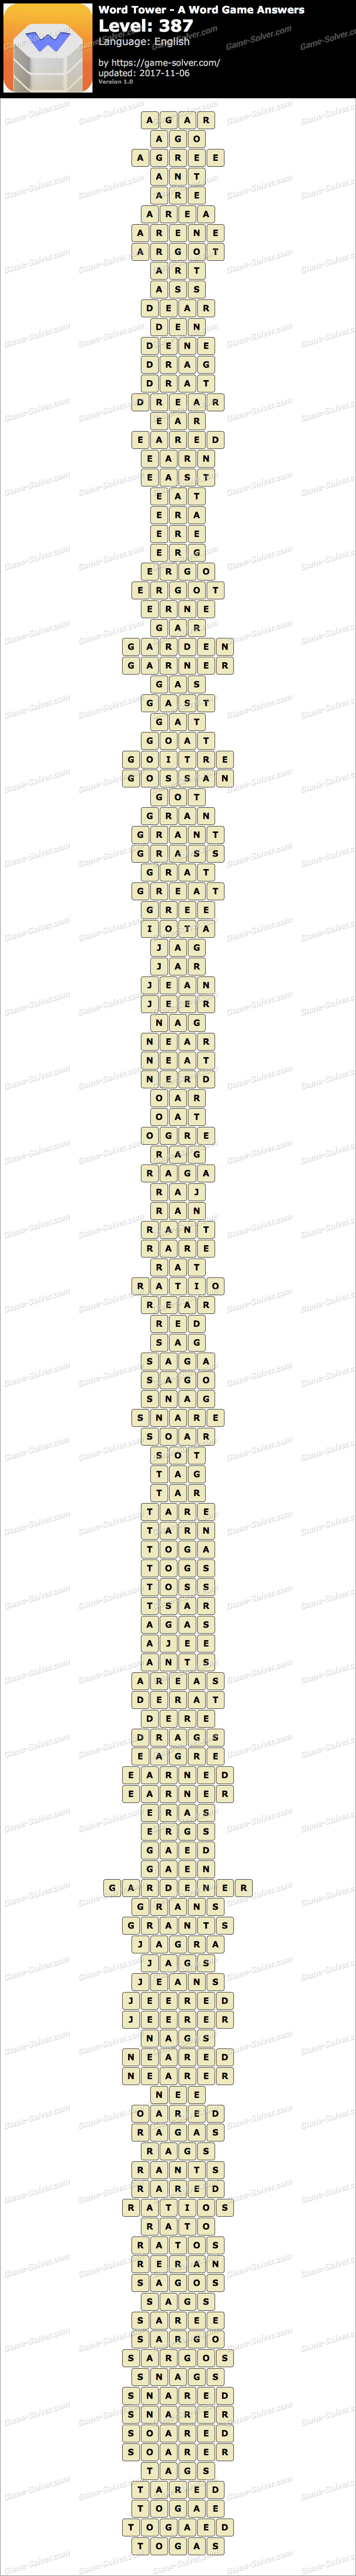 Word Tower Level 387 Answers